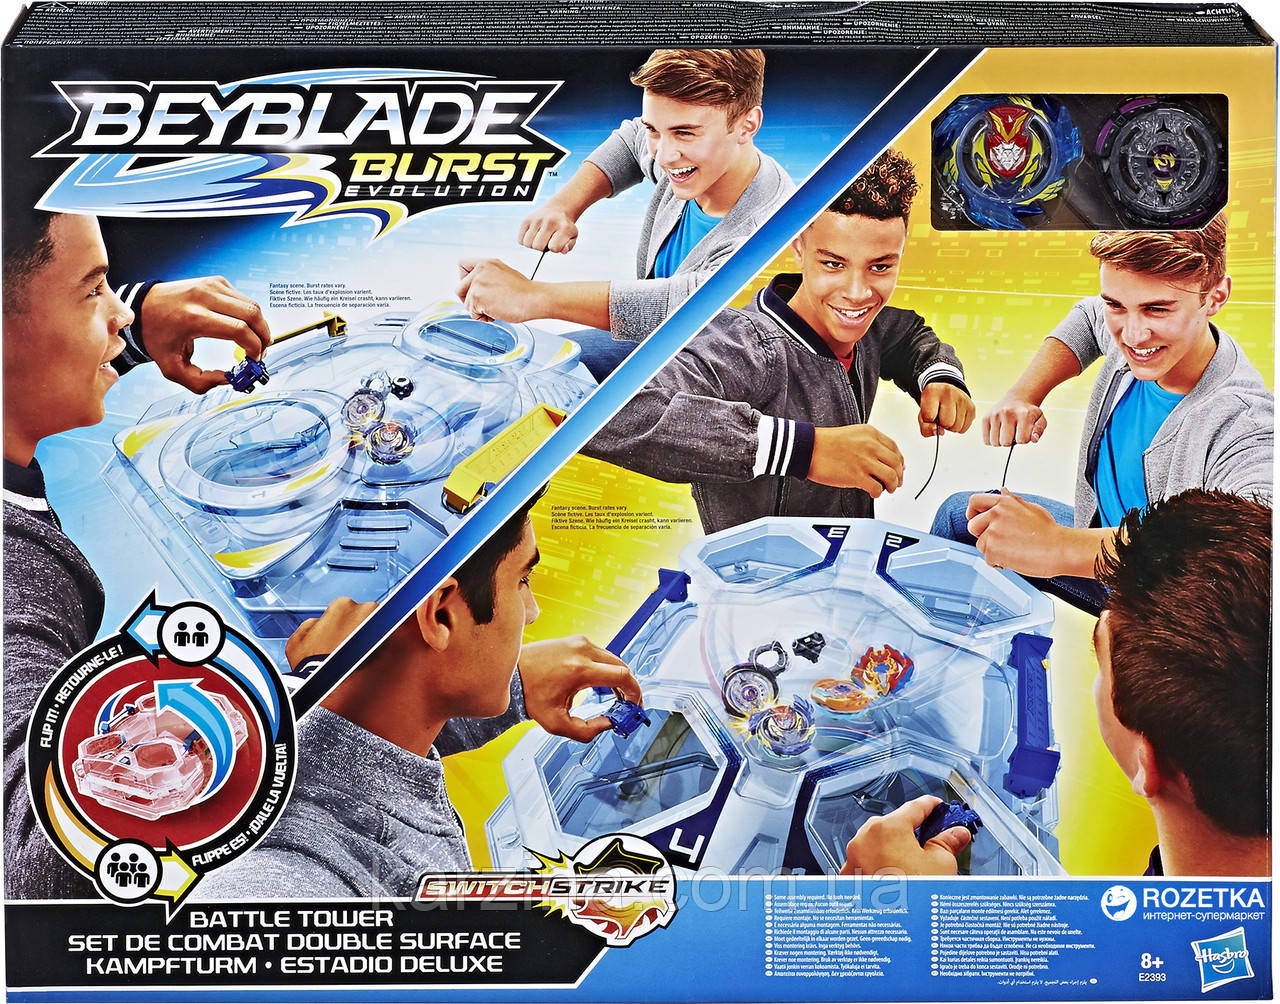 Beyblade набор волчков Burst Evolution Switchstrike Battle Tower